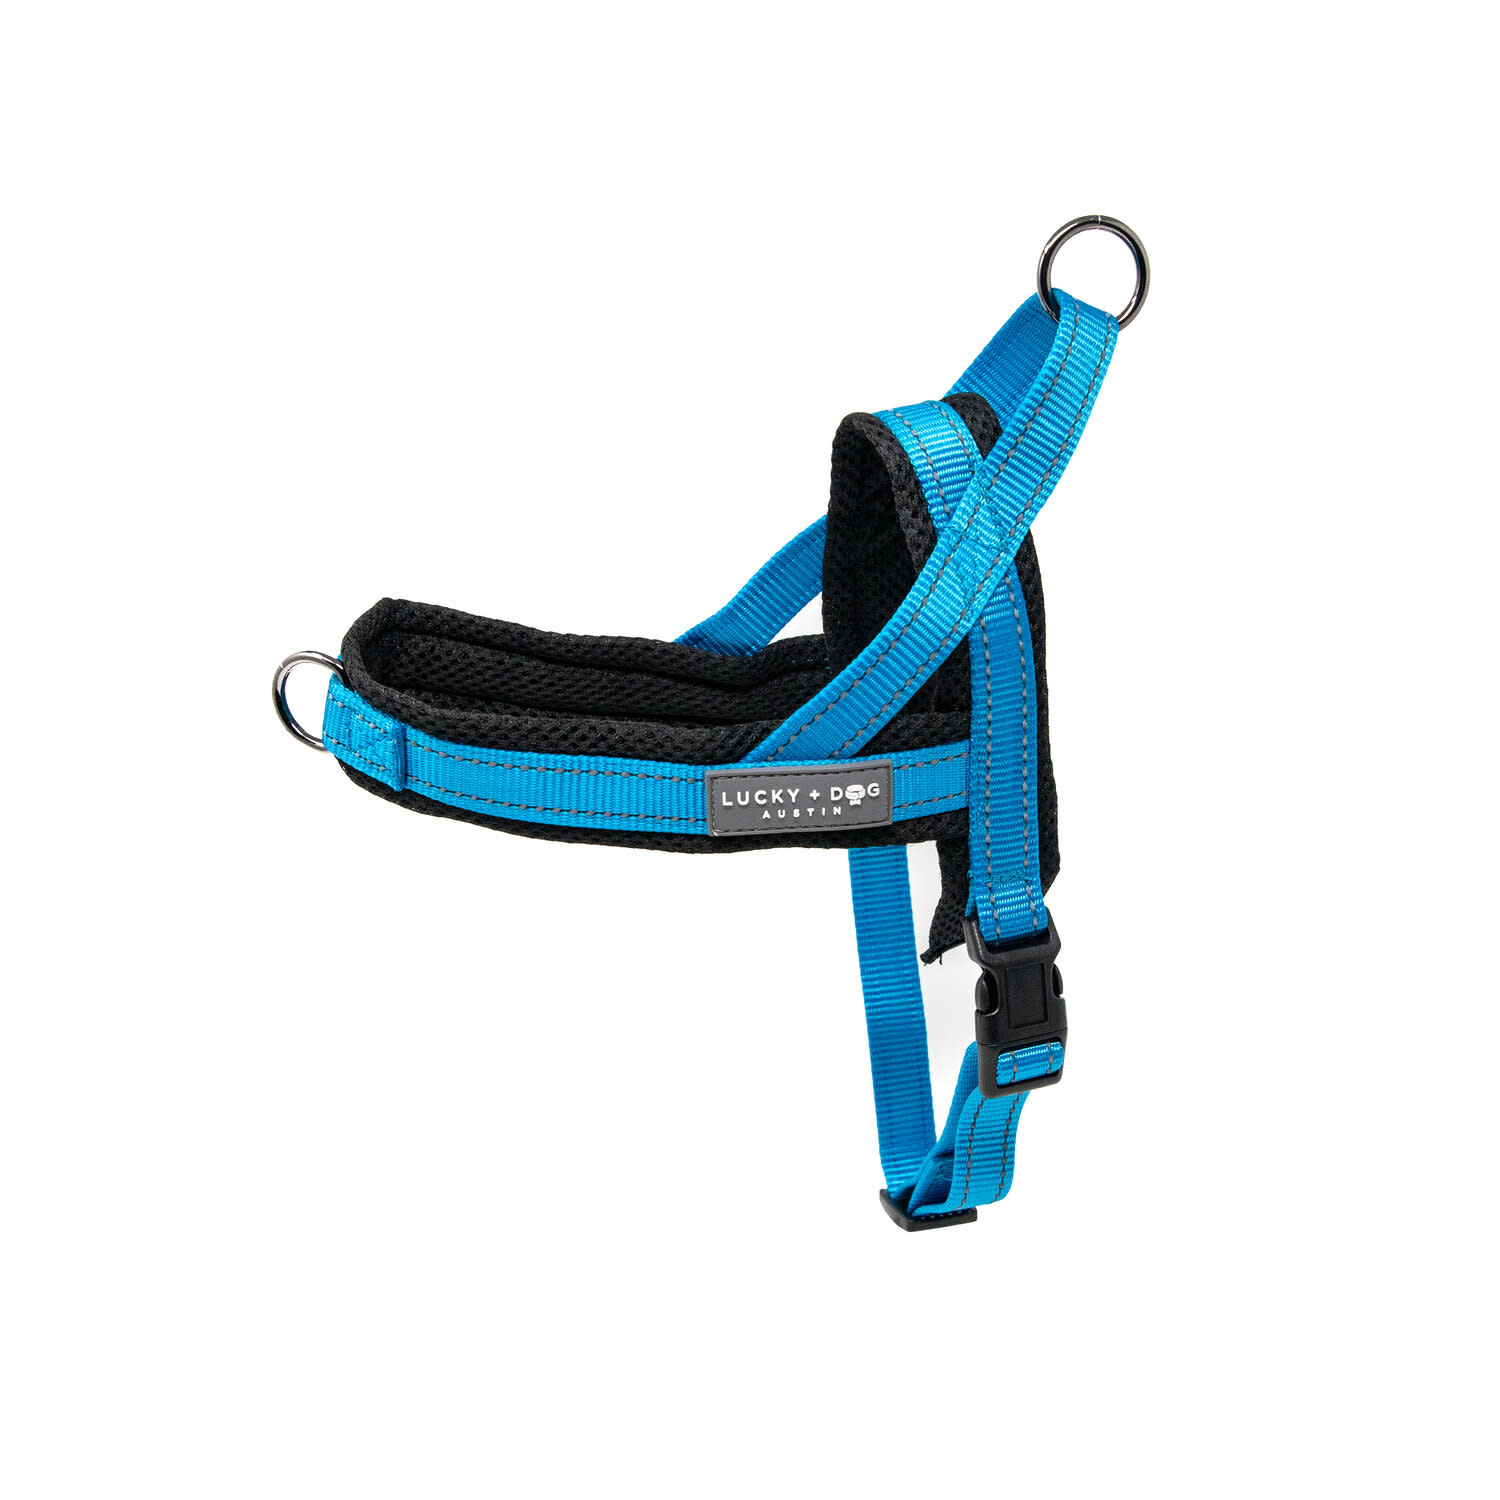 Lucky + Dog Lucky + Dog Quick Fit Harness Light Blue LG